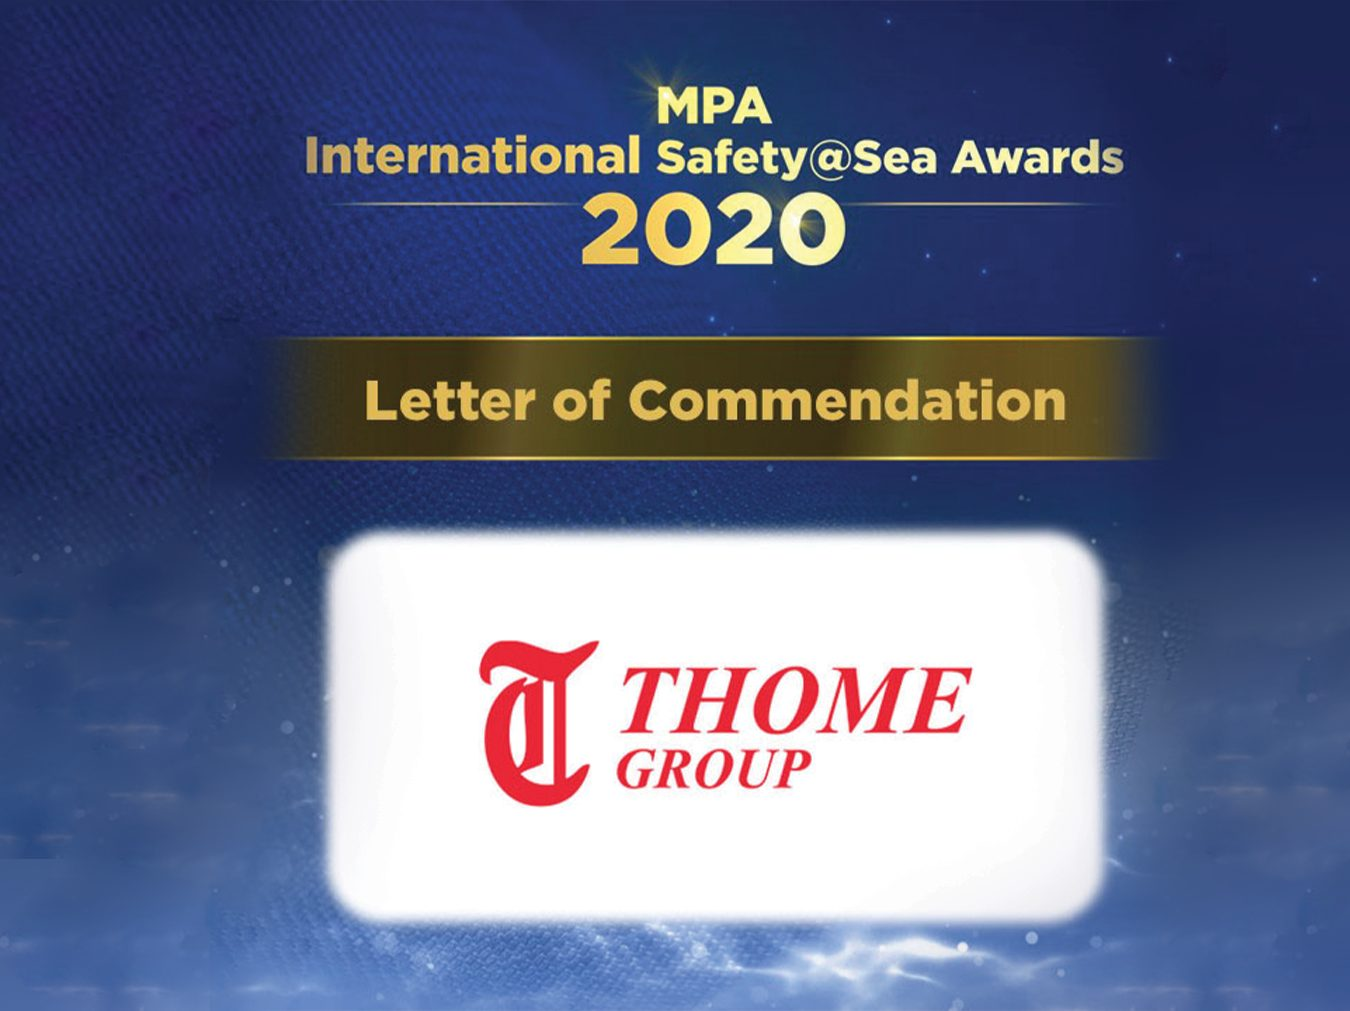 Thome Group Receives Letter of Commendation at MPA Singapore Awards